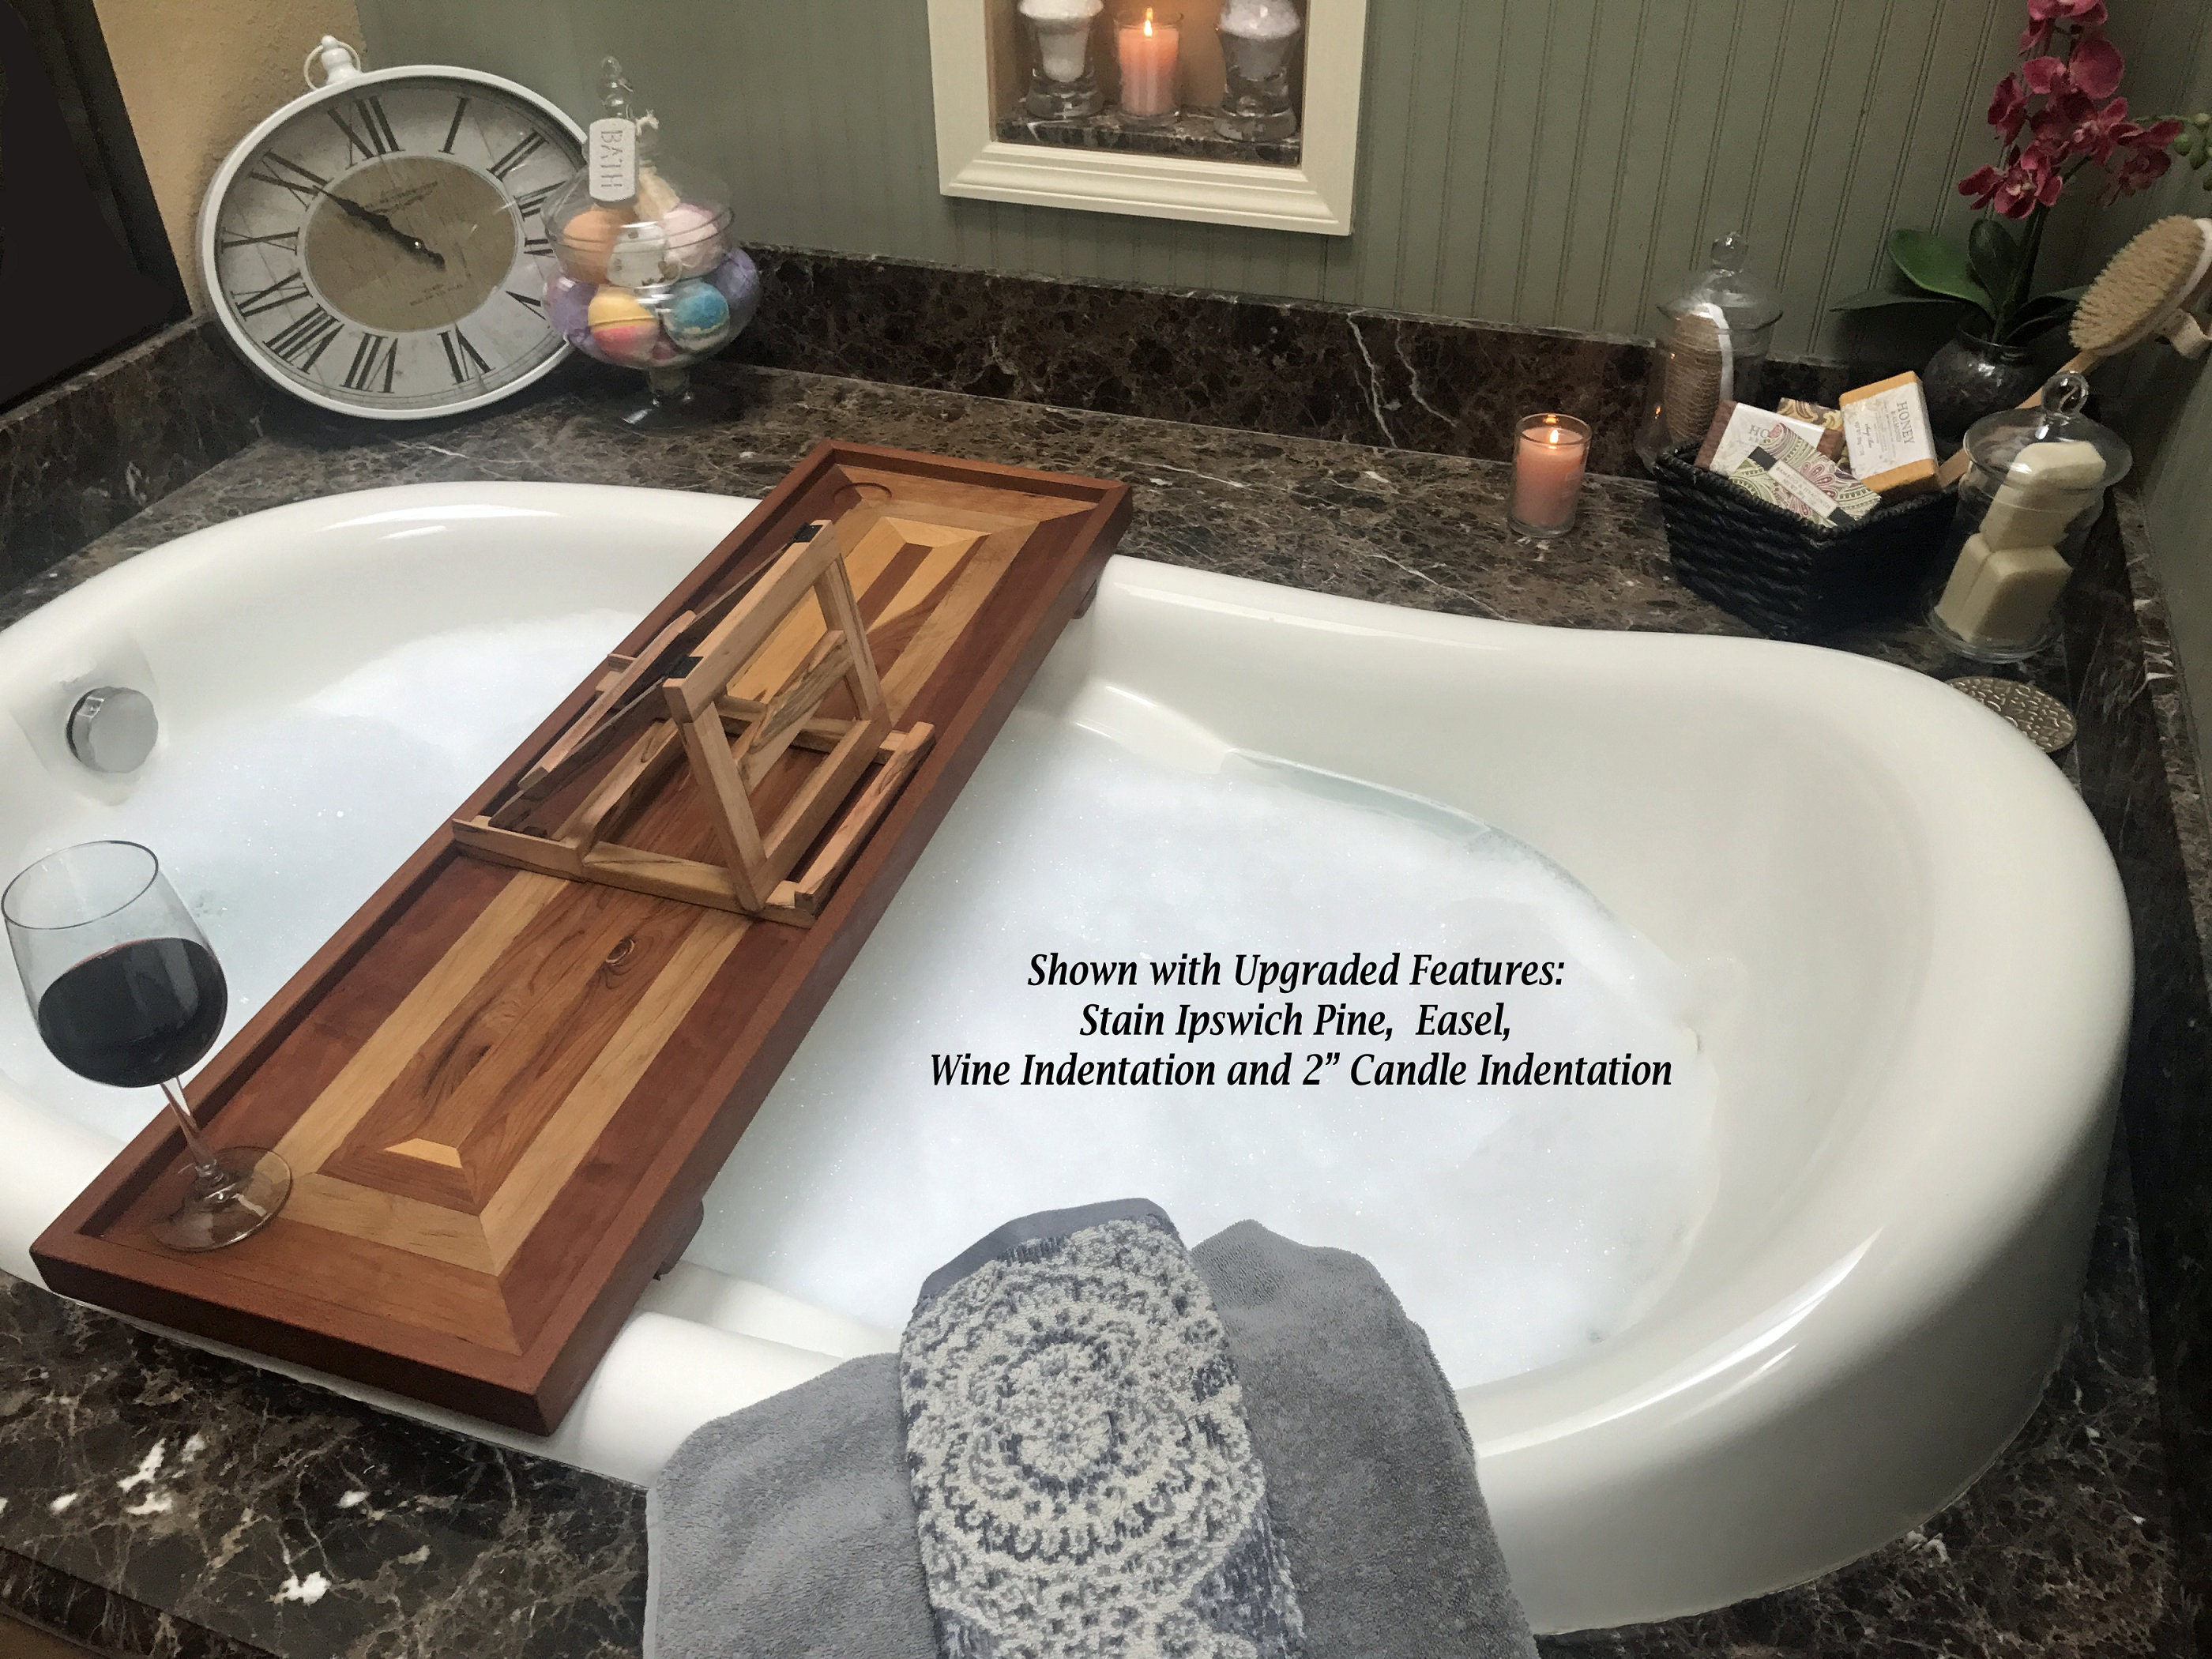 Wood Bath Tub Tray with optional wine holder. Bathtub Tray Shelf ...